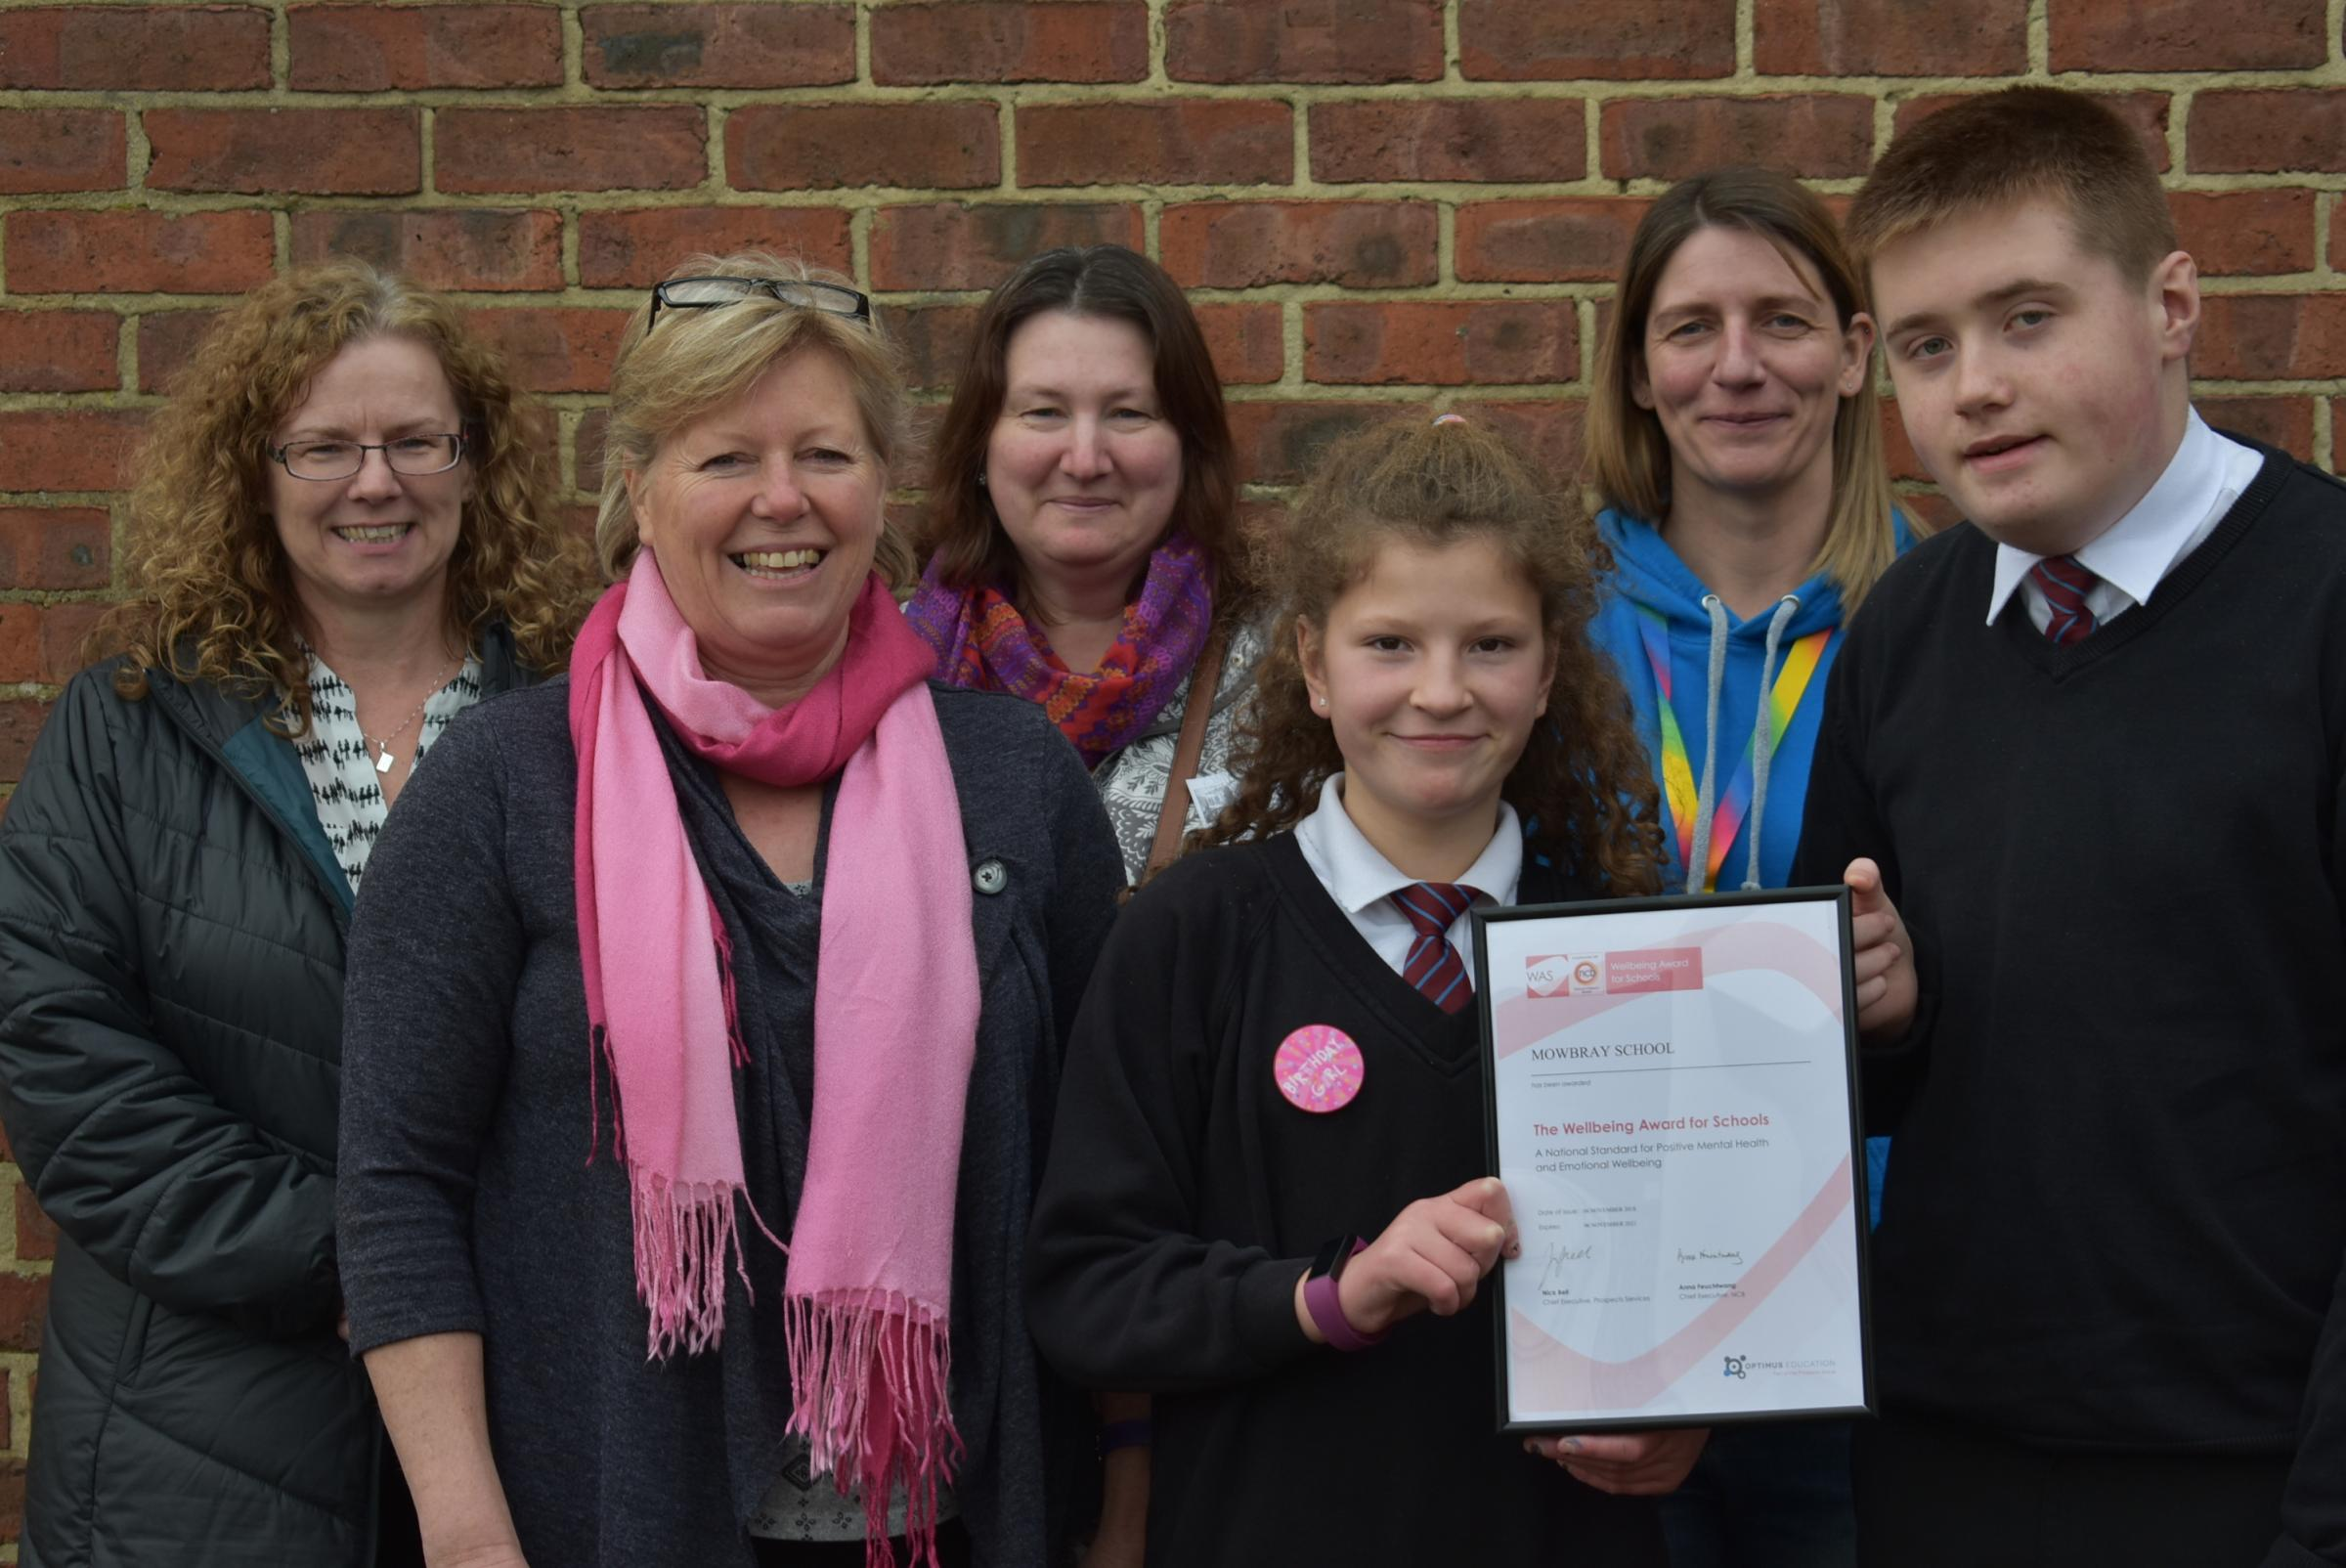 SPECIAL: Mowbray School is presented with the Wellbeing award